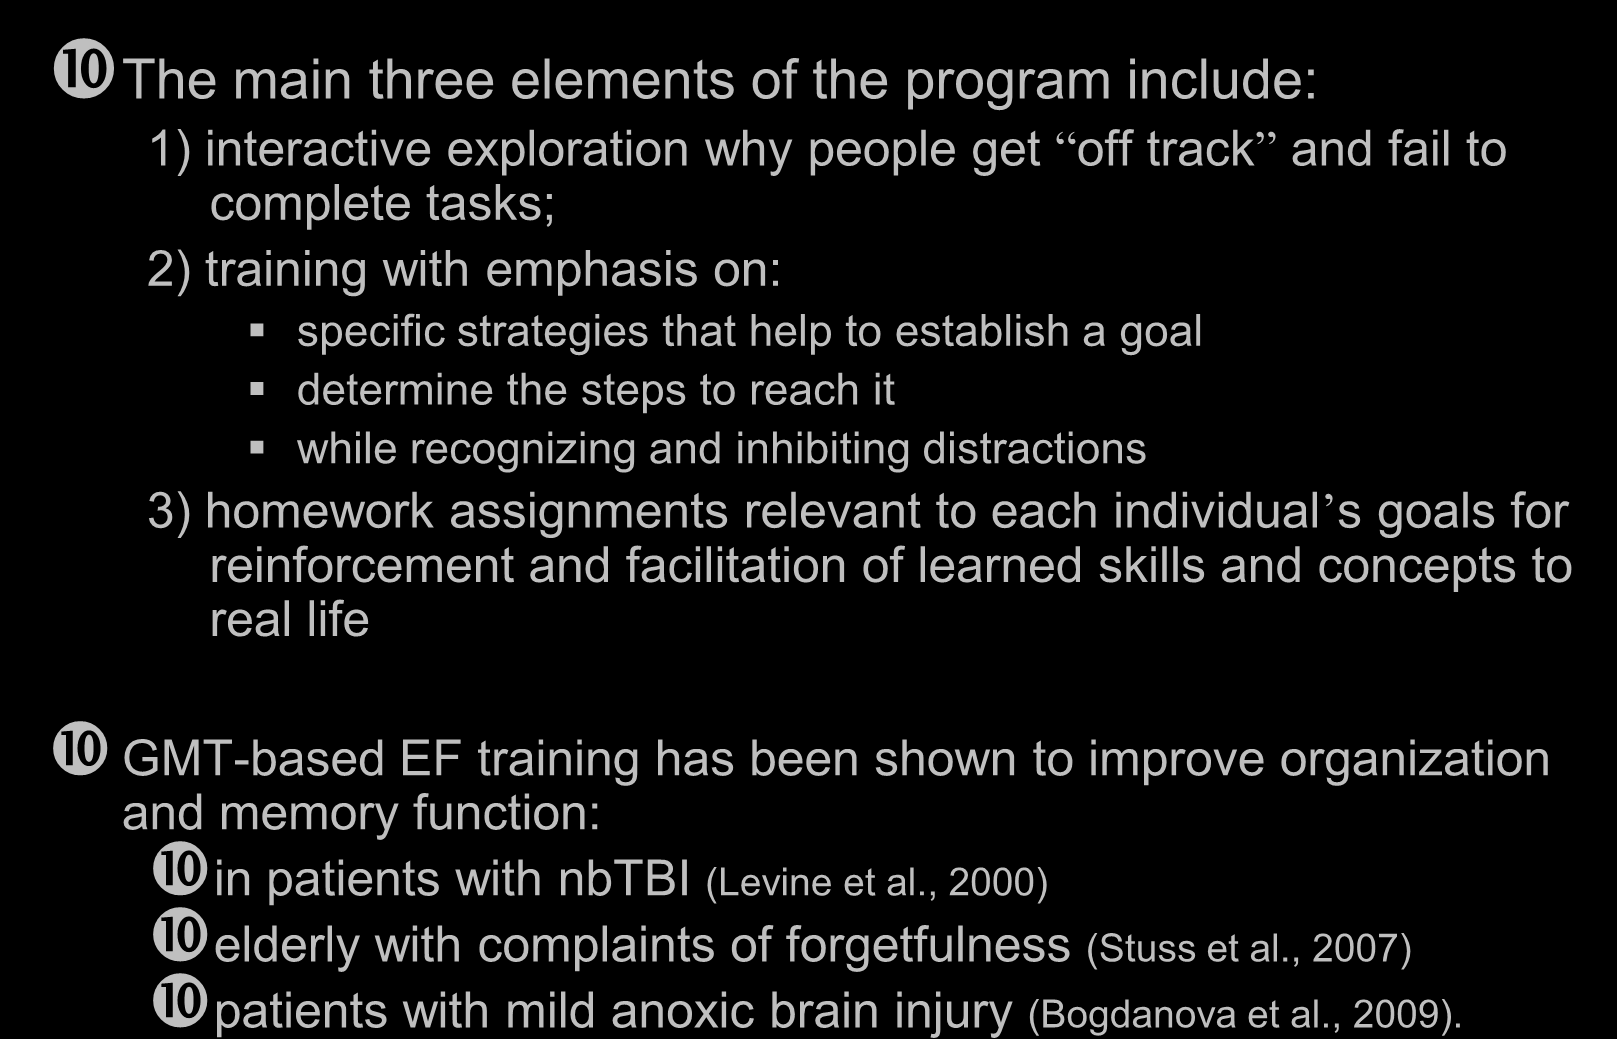 Executive Function Training The main three elements of the program include: 1) interactive exploration why people get off track and fail to complete tasks; 2) training with emphasis on: specific